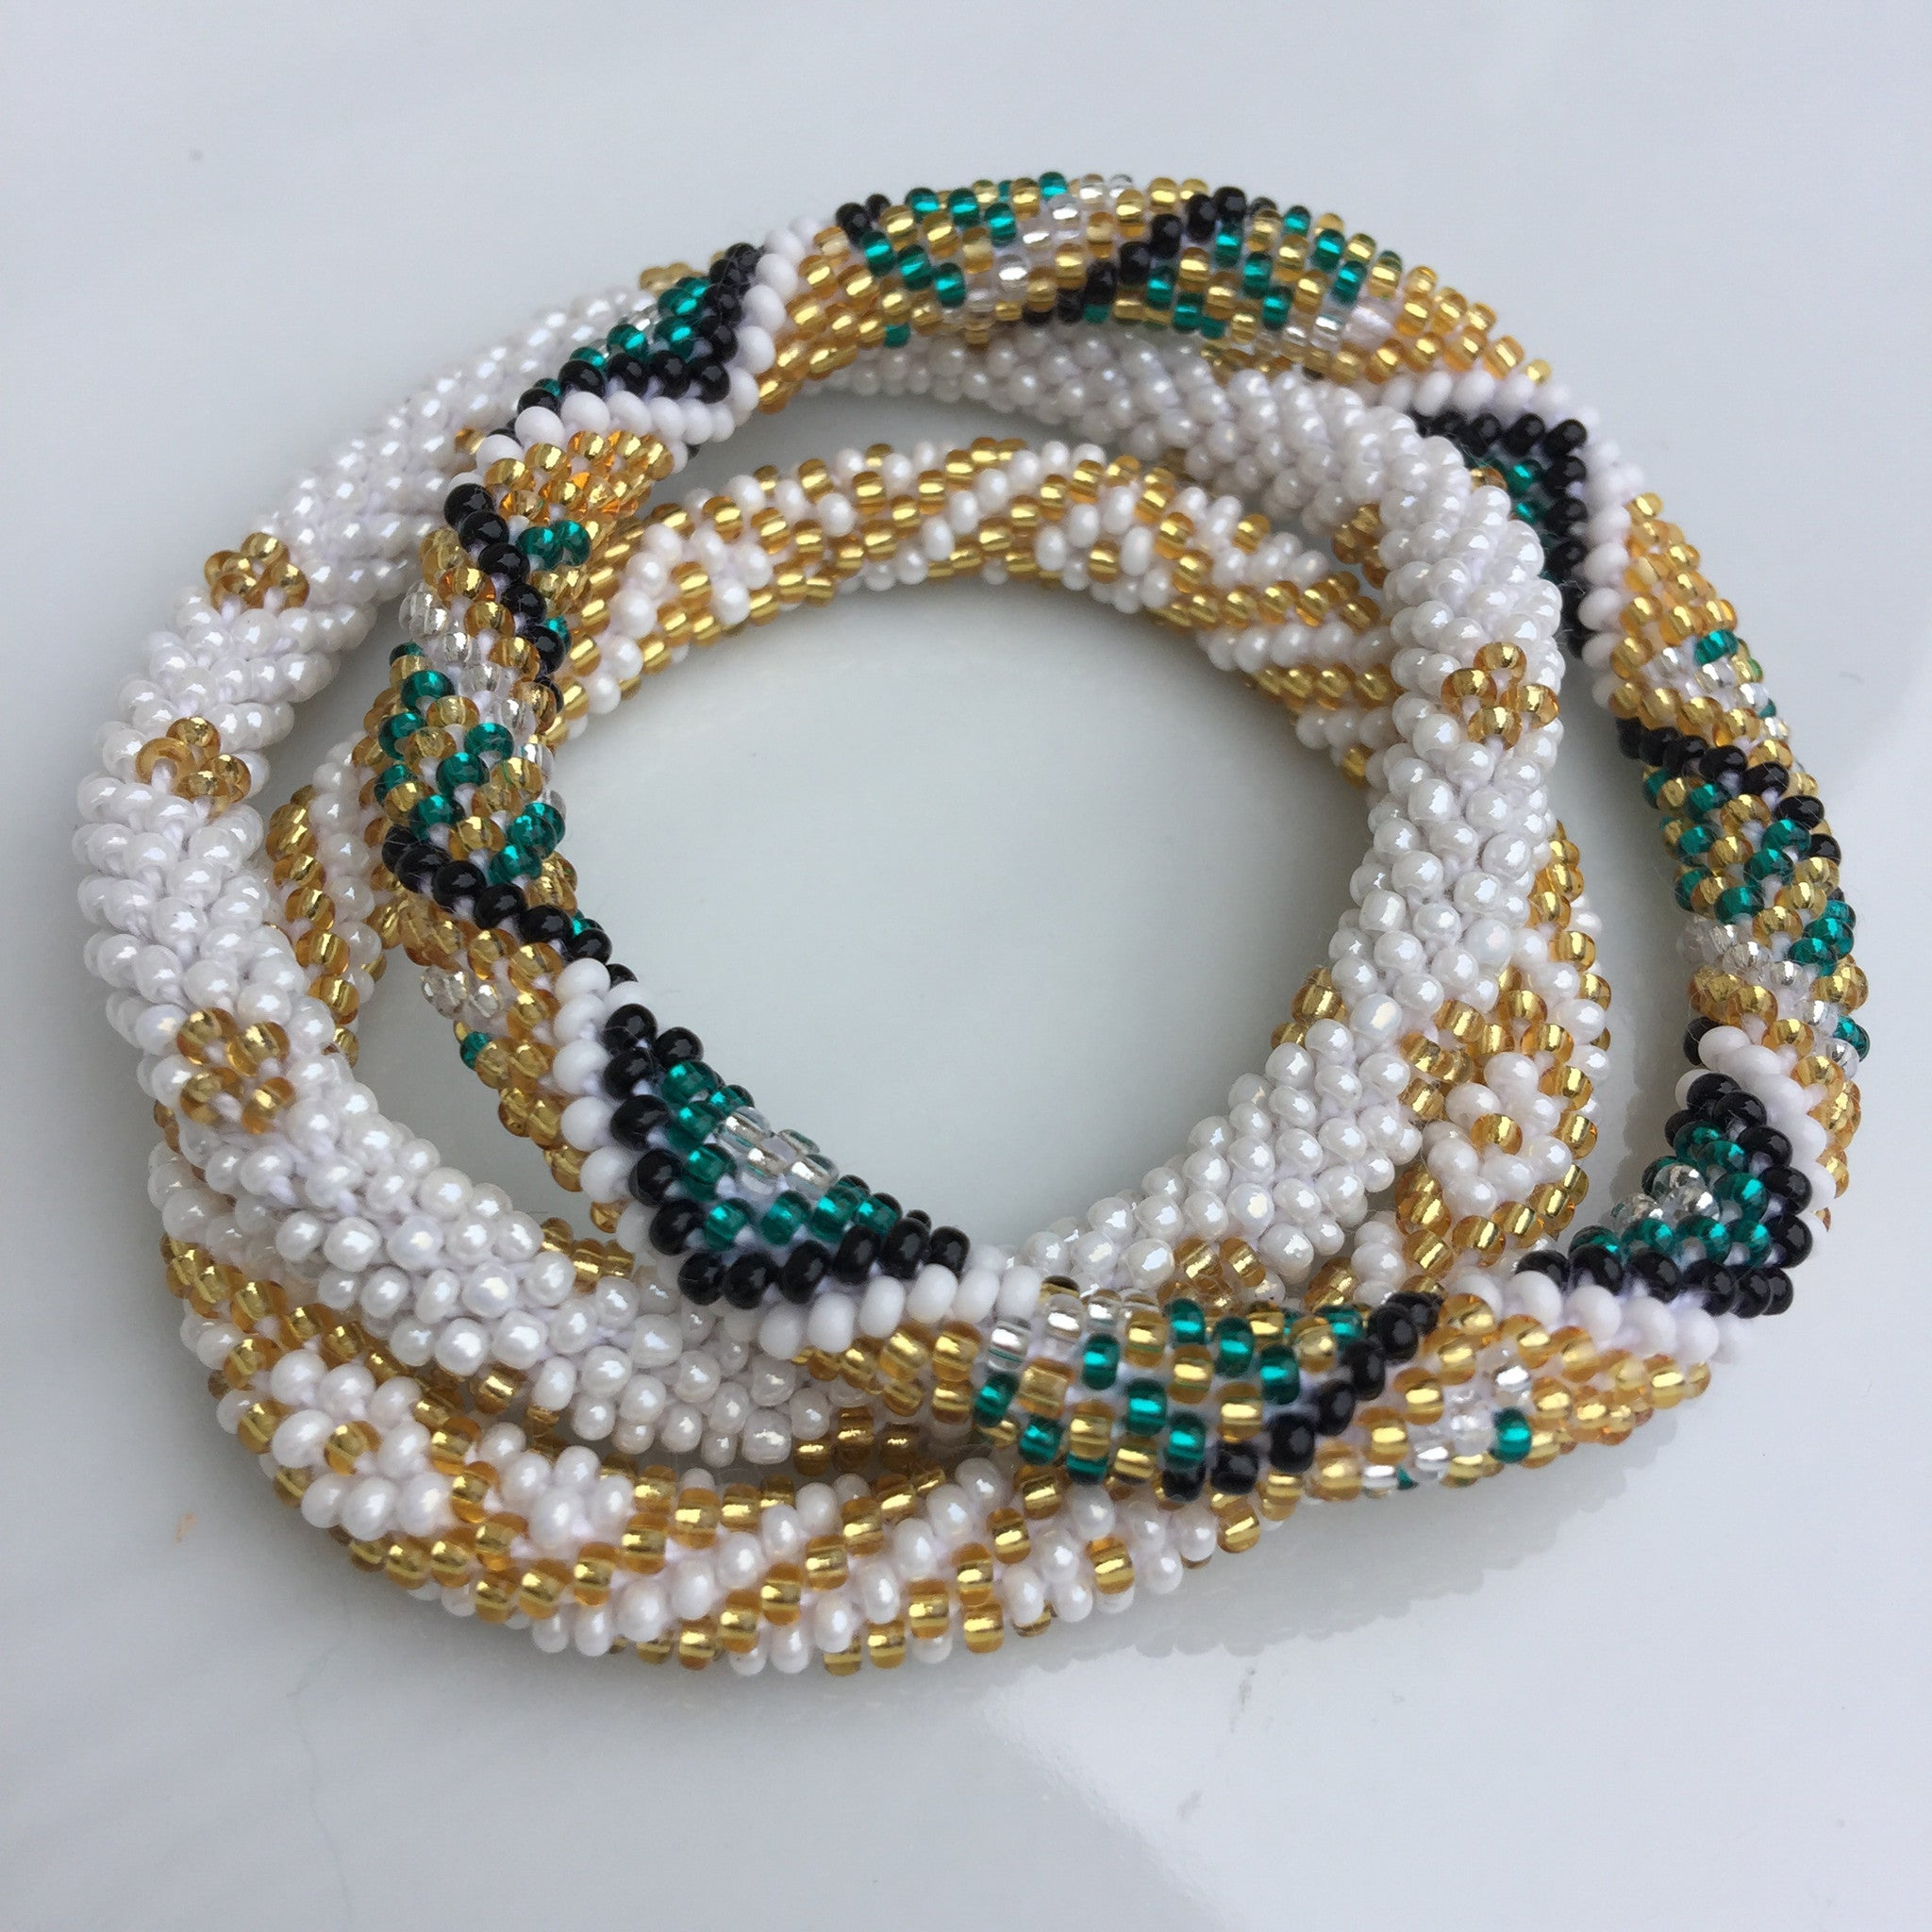 Roll On Fair Trade Bracelet Set- 11